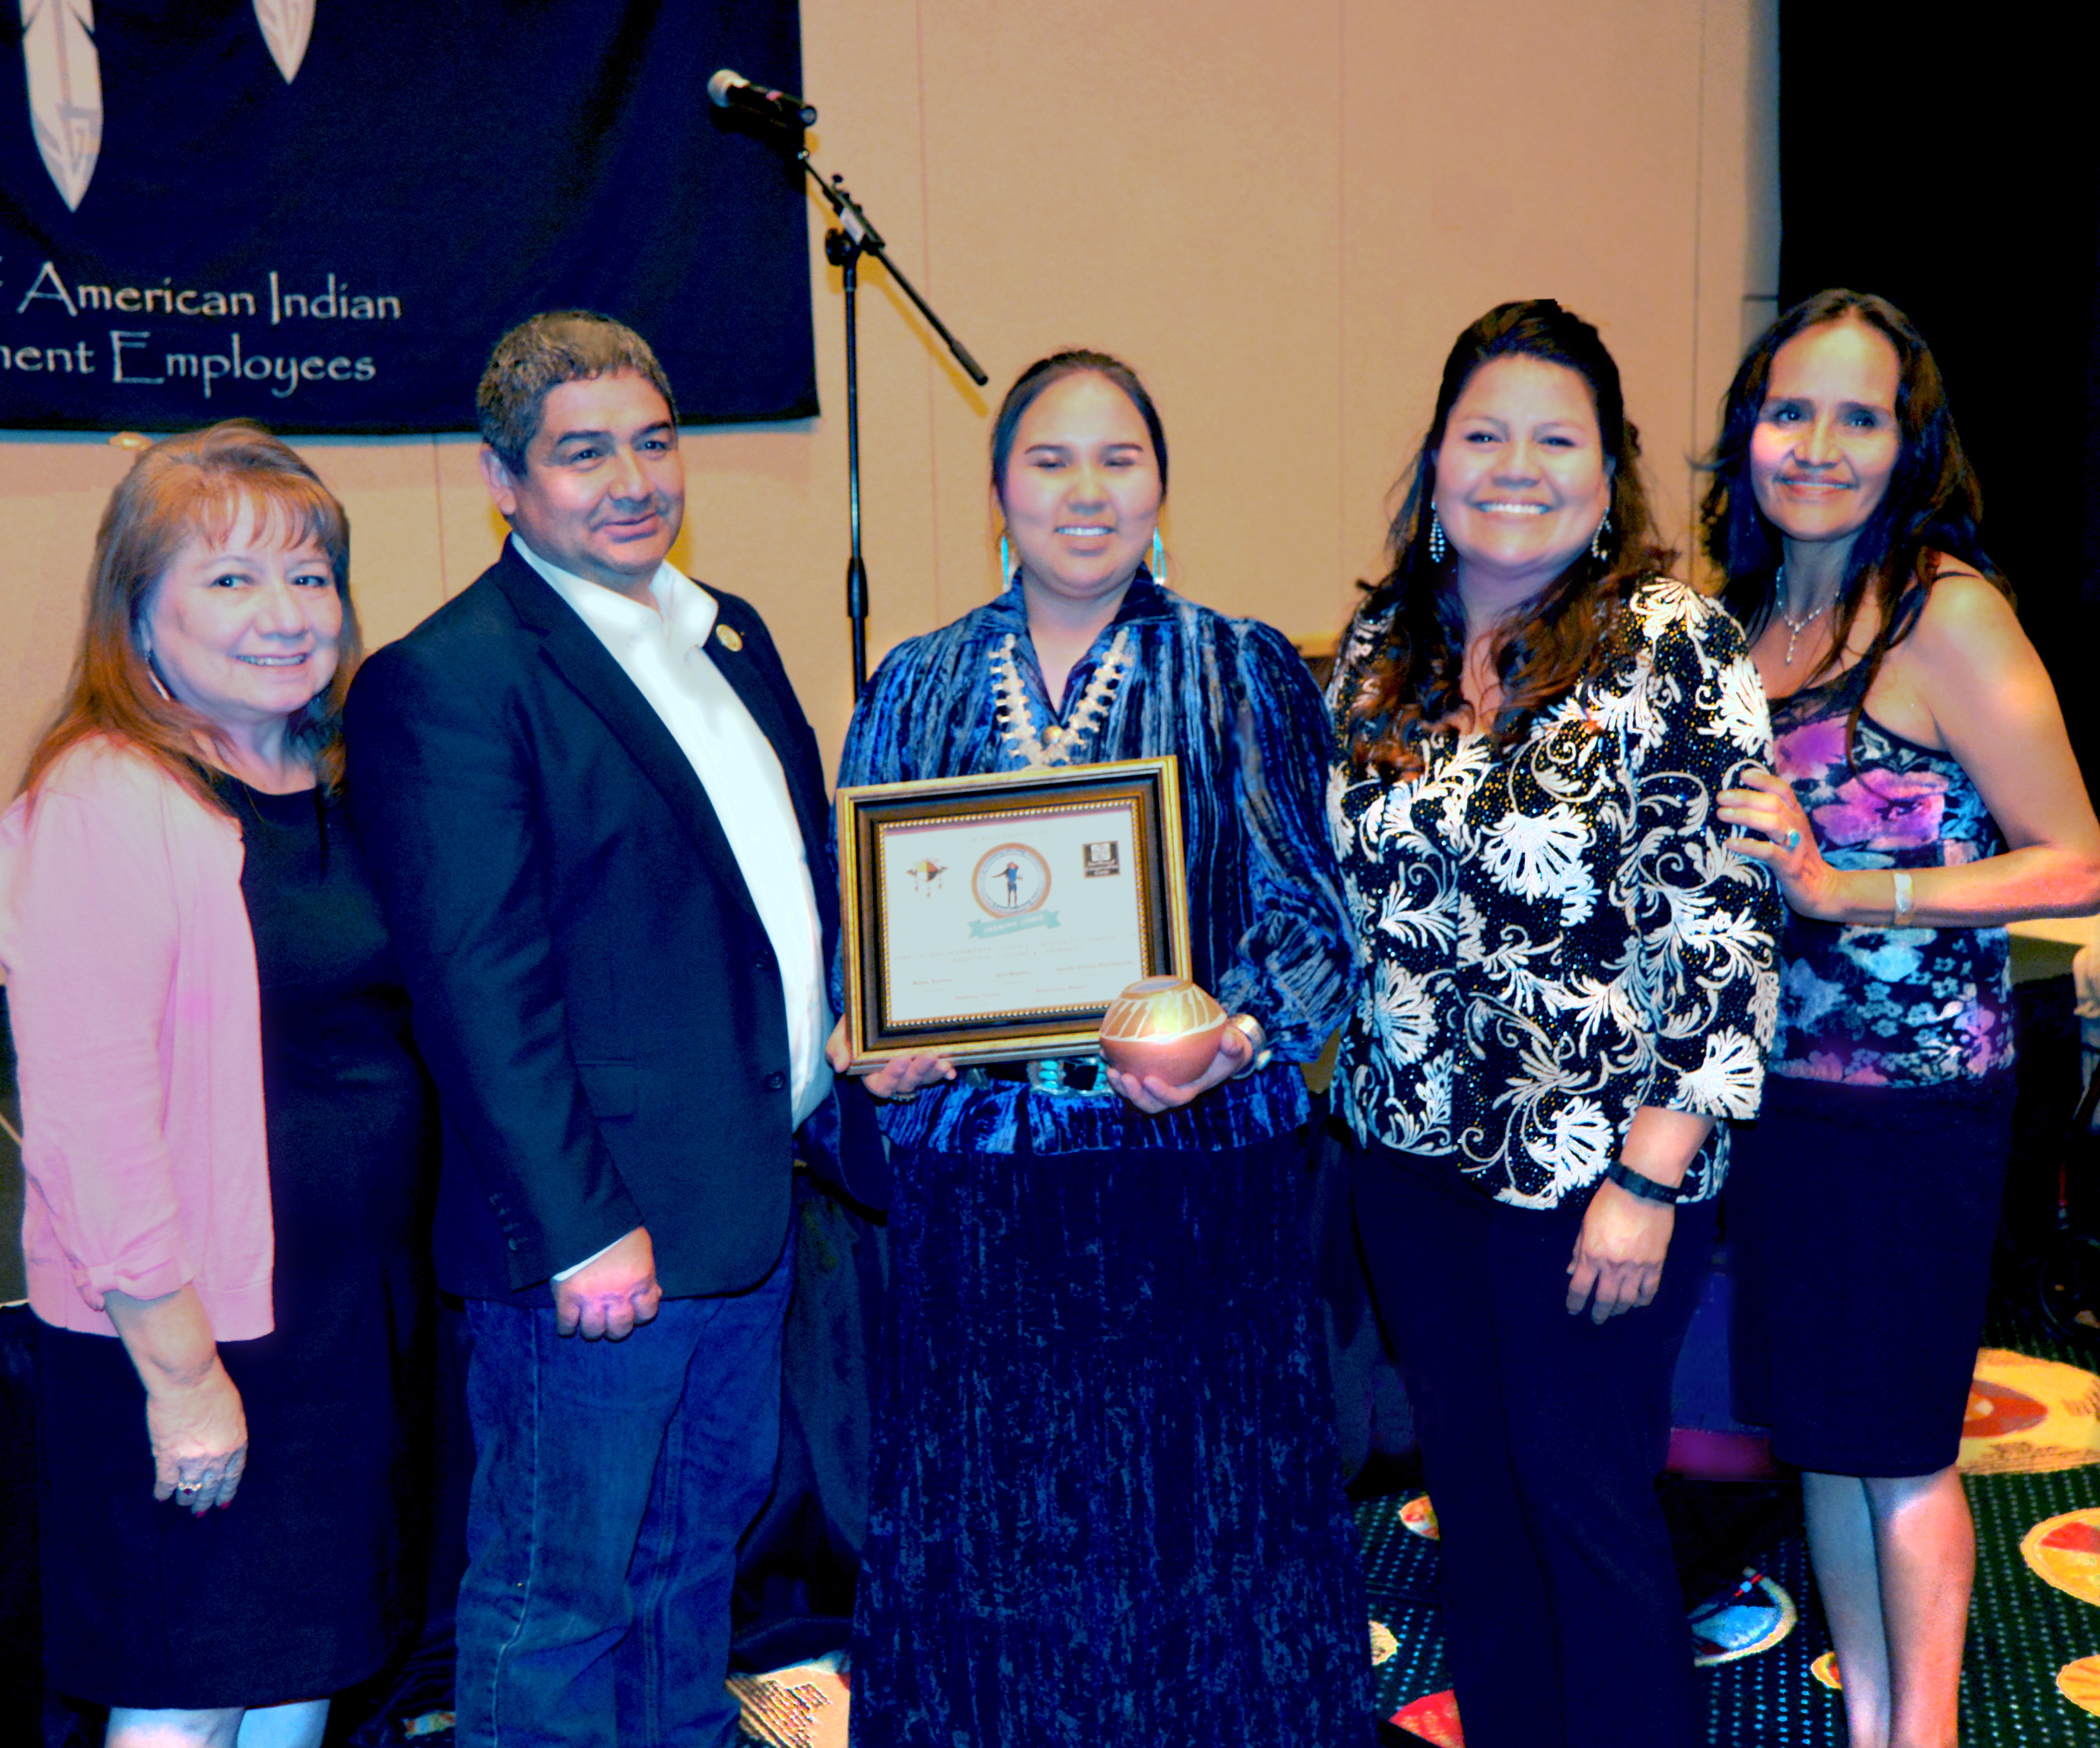 Jasmine Jishie -First Dallas Peterman Youth Leadership Award Winner, with Mr. & Mrs. Peterman, family friend and Youth Program Director, JoAnn Brant (Far Left)